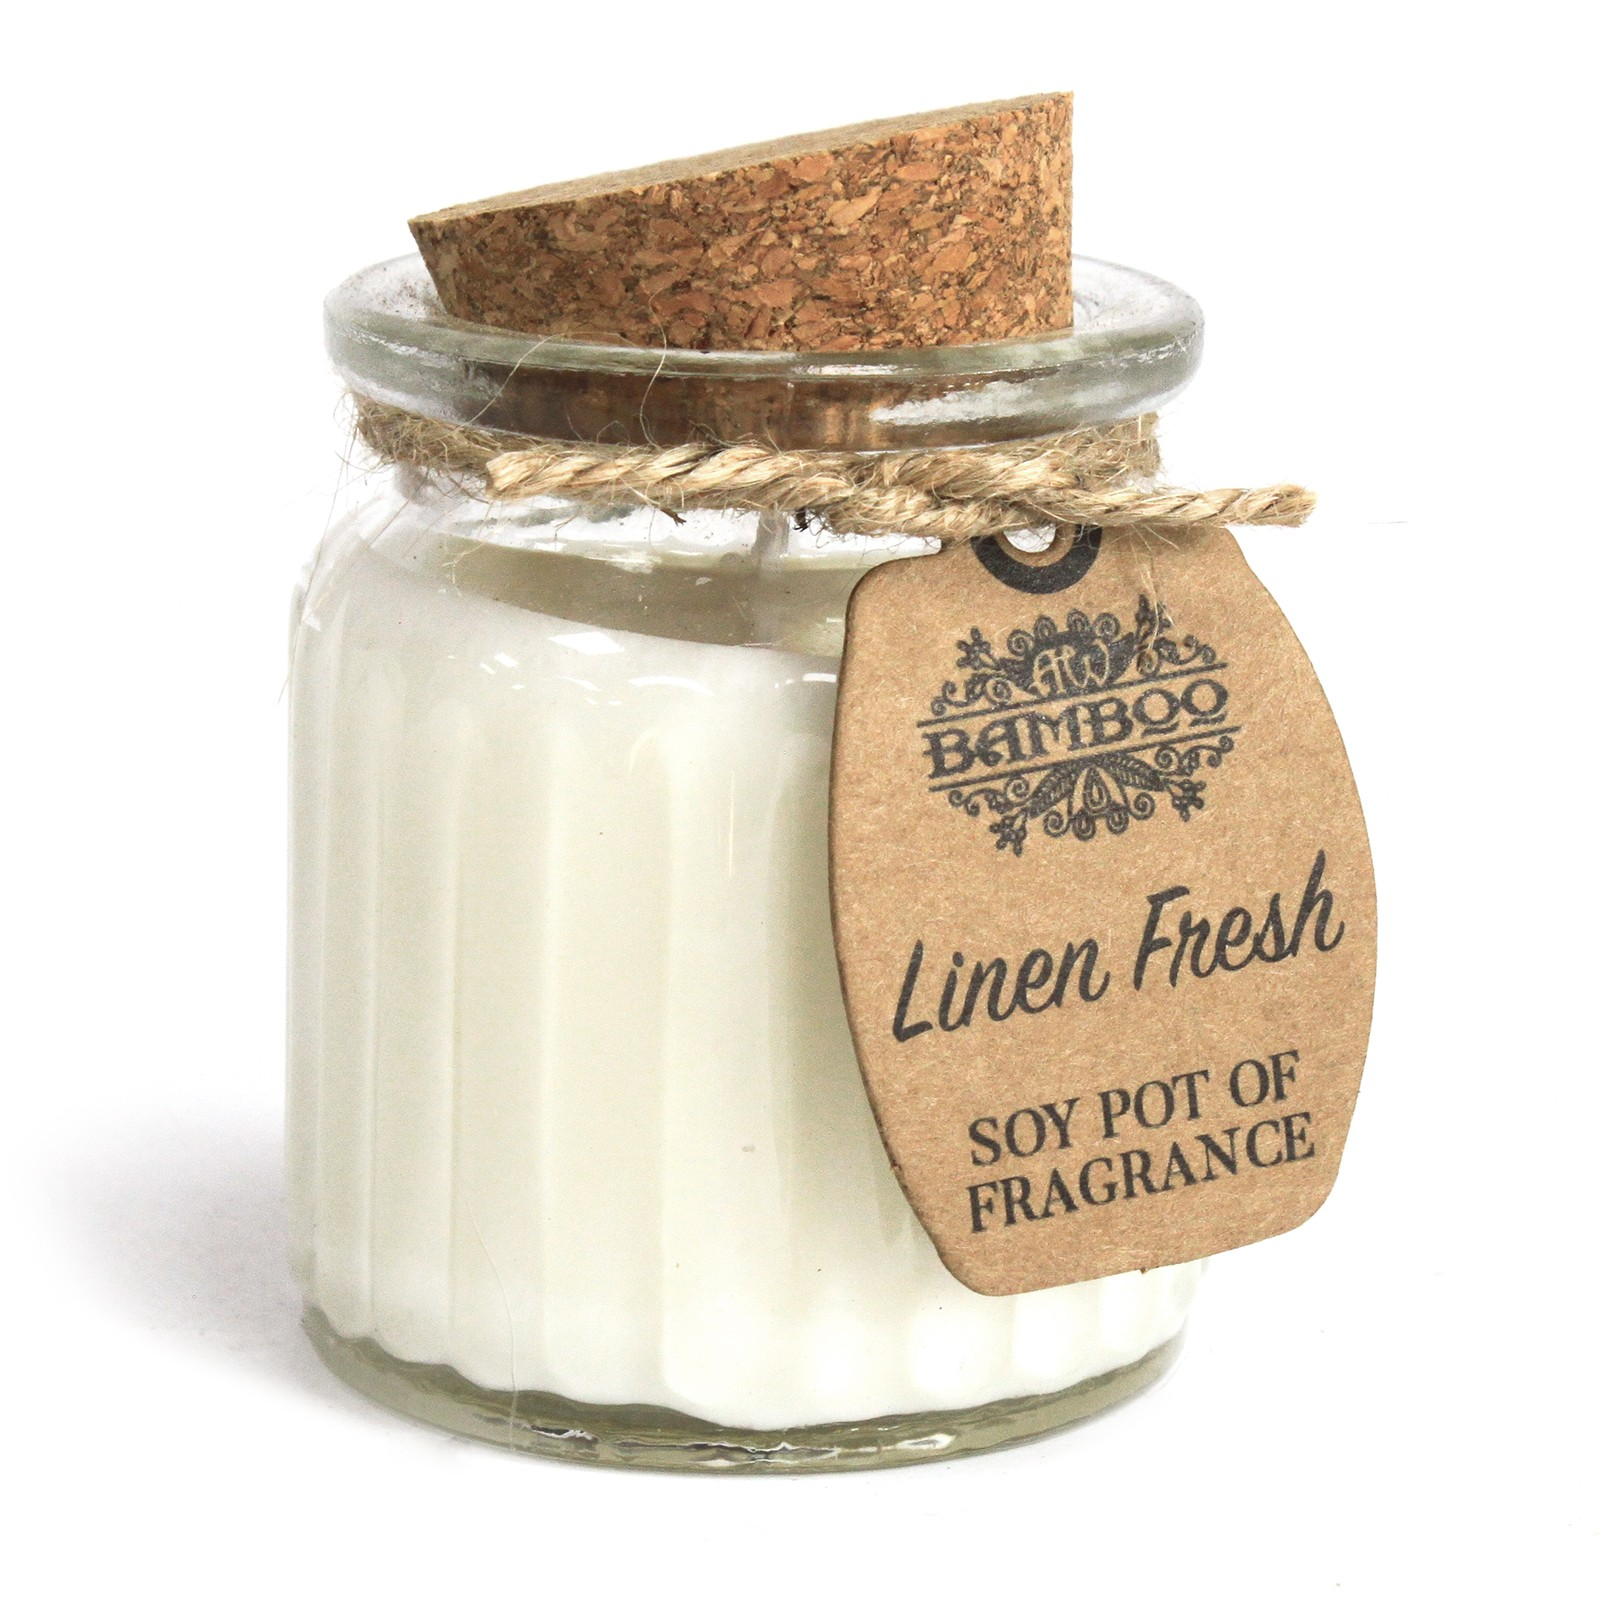 Linen Fresh Soy Pot of Fragrance Candles